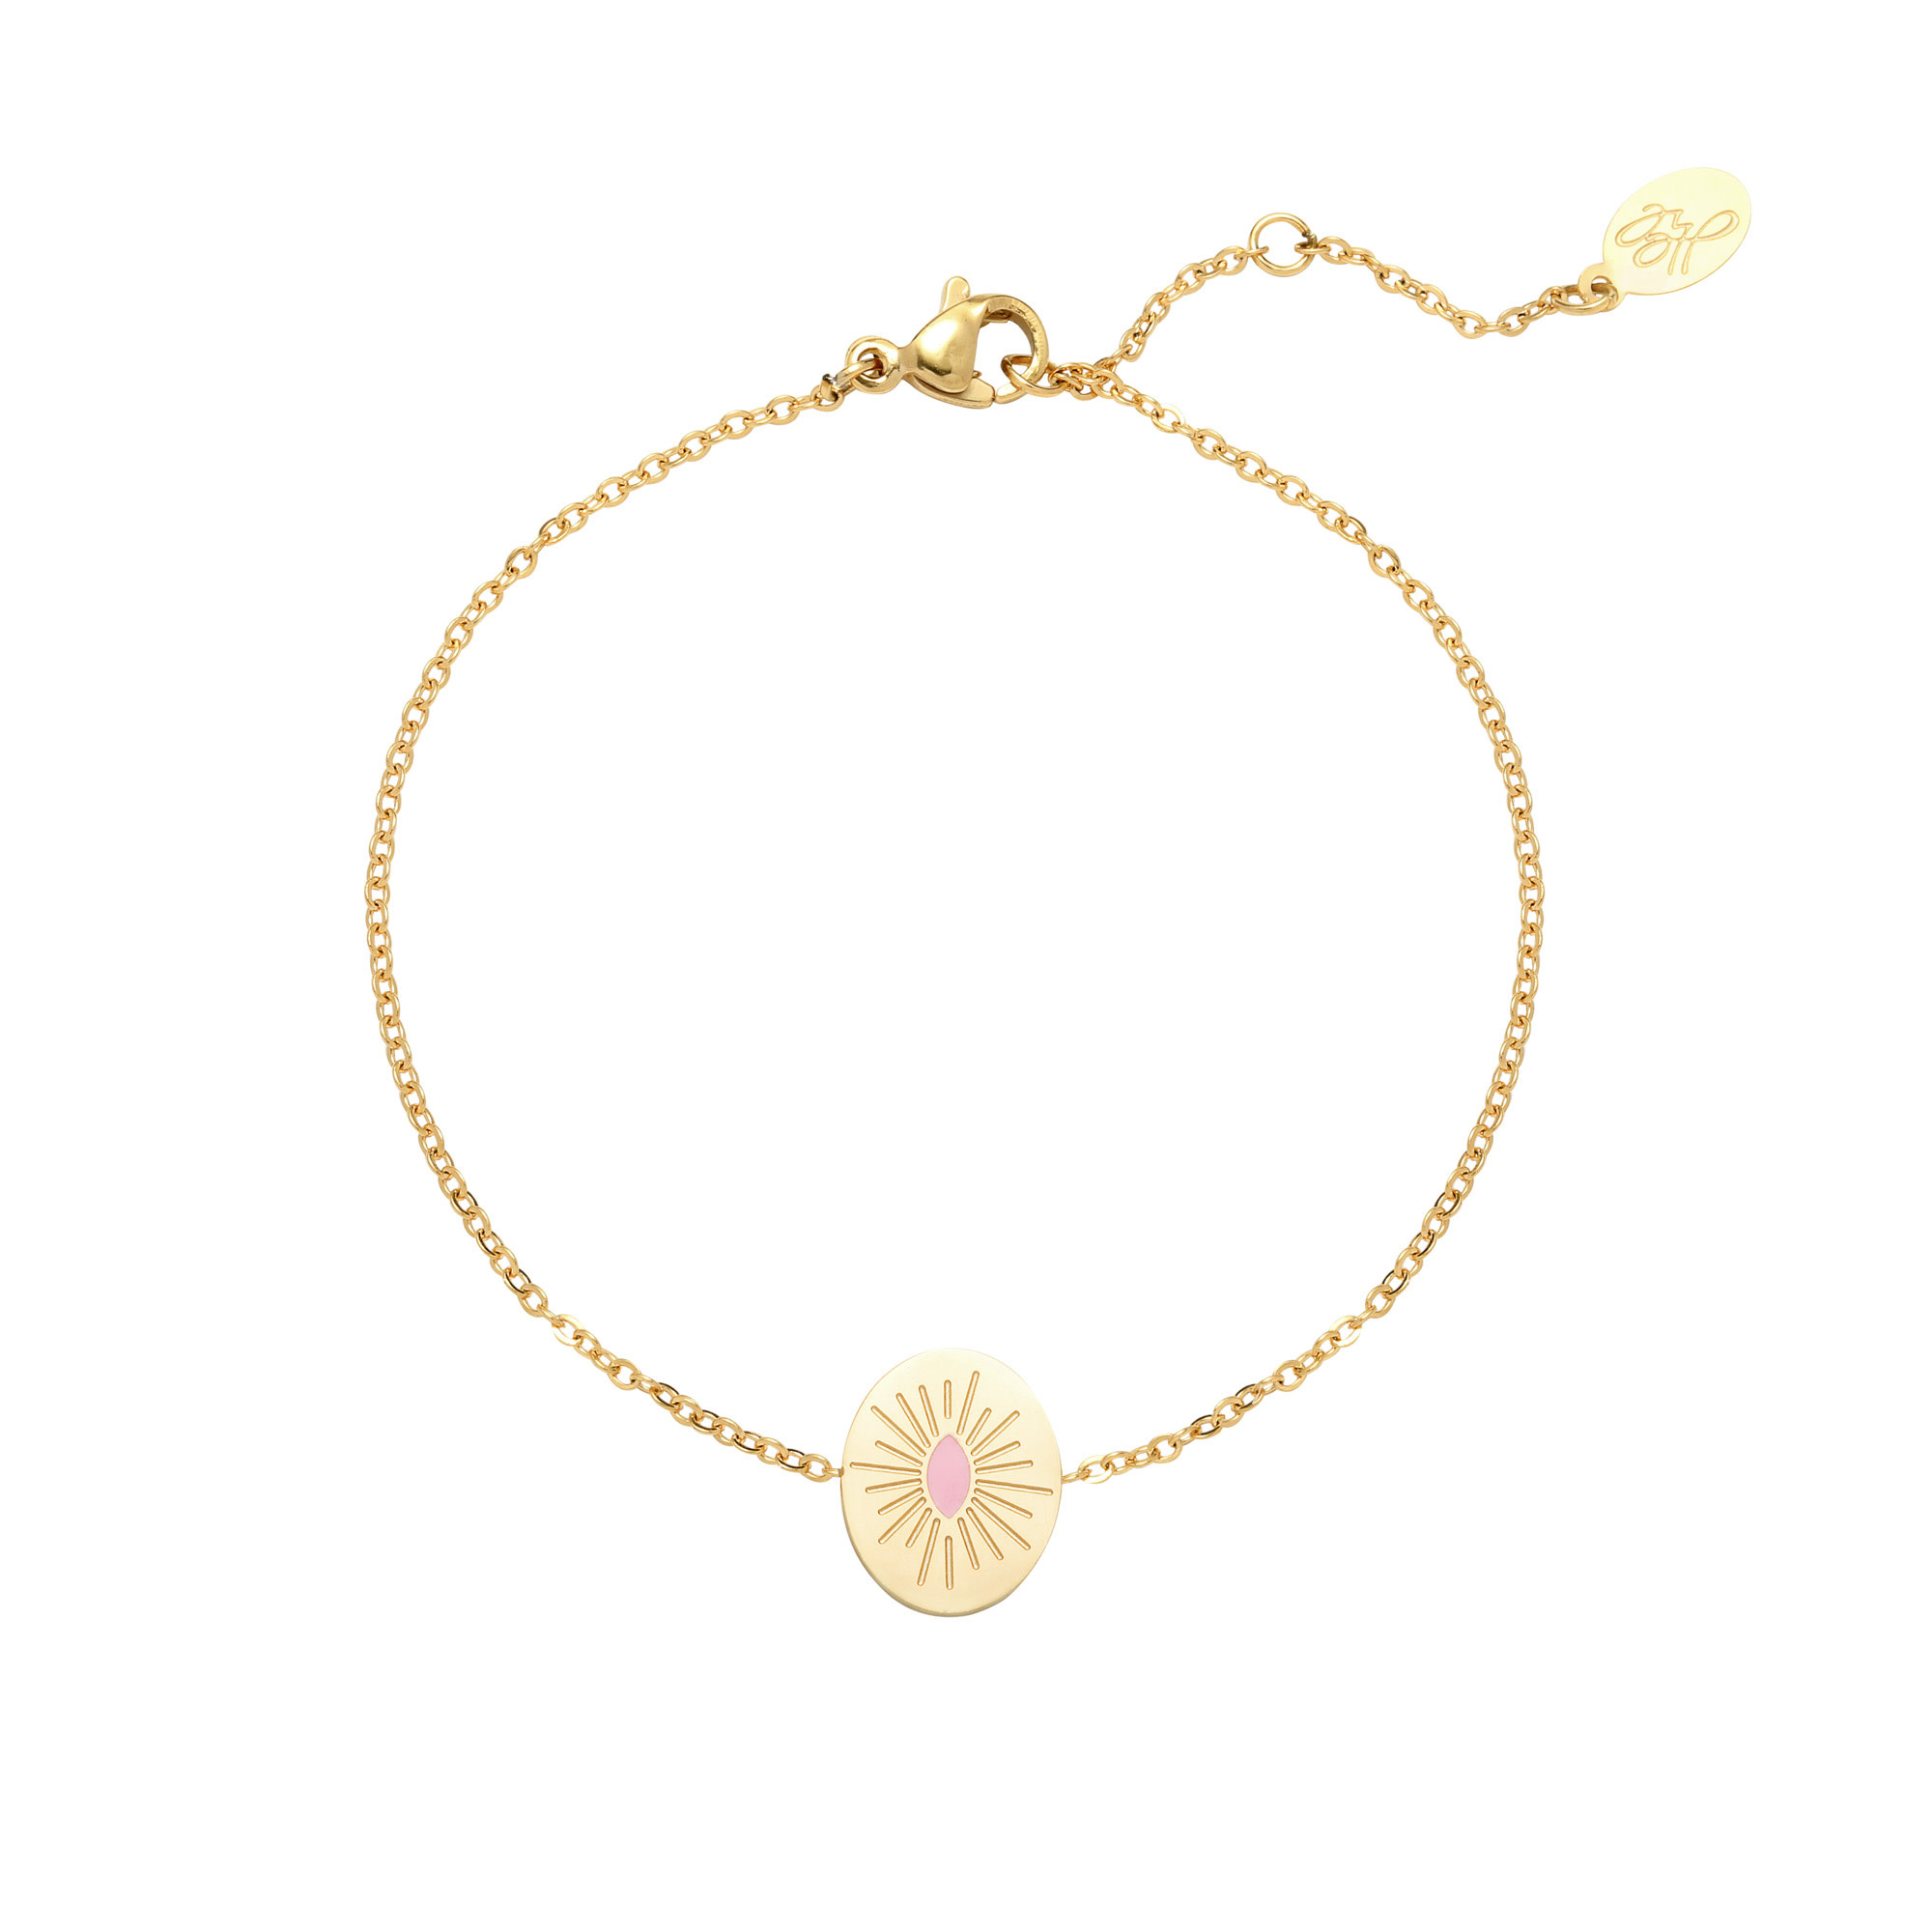 With love Bracelet sweet like candy gold - light pink